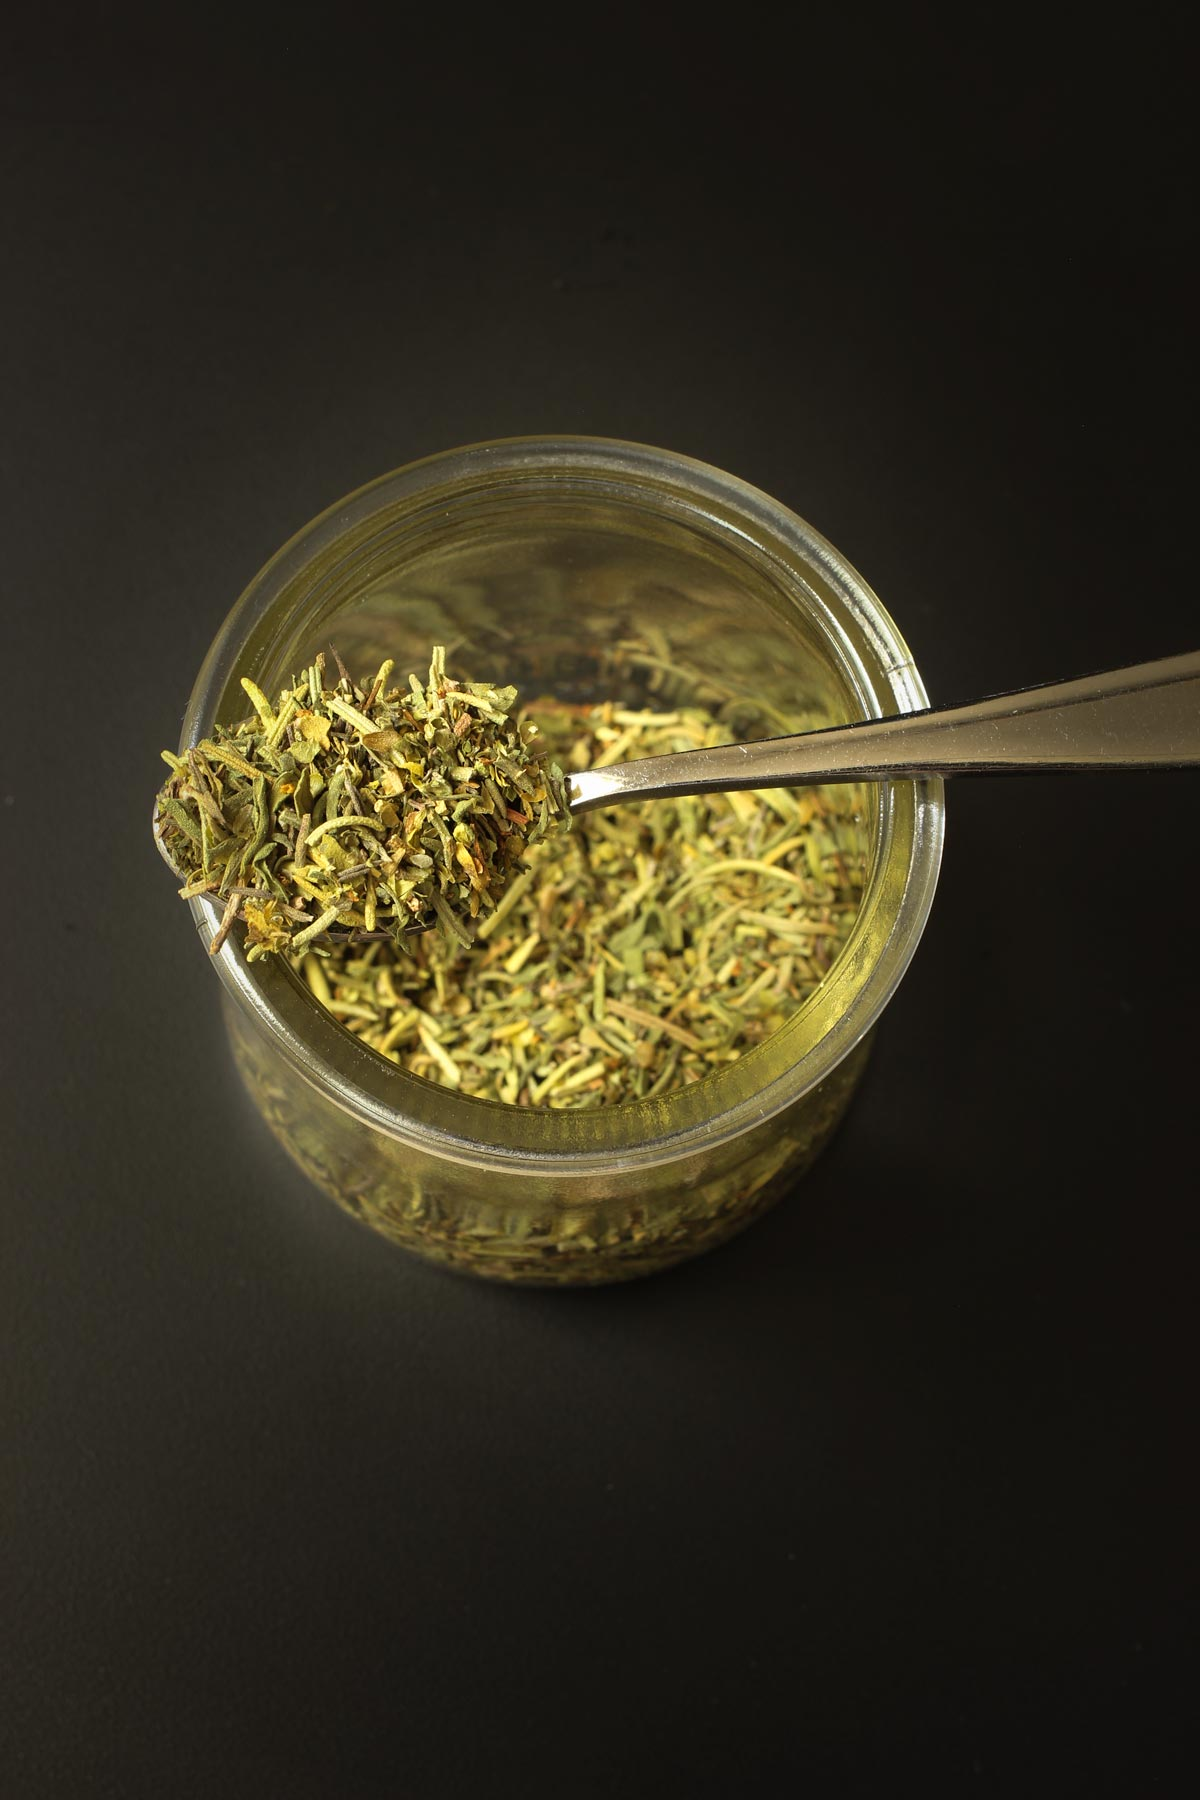 small spoon of herbes resting atop glass jar of more herbes.